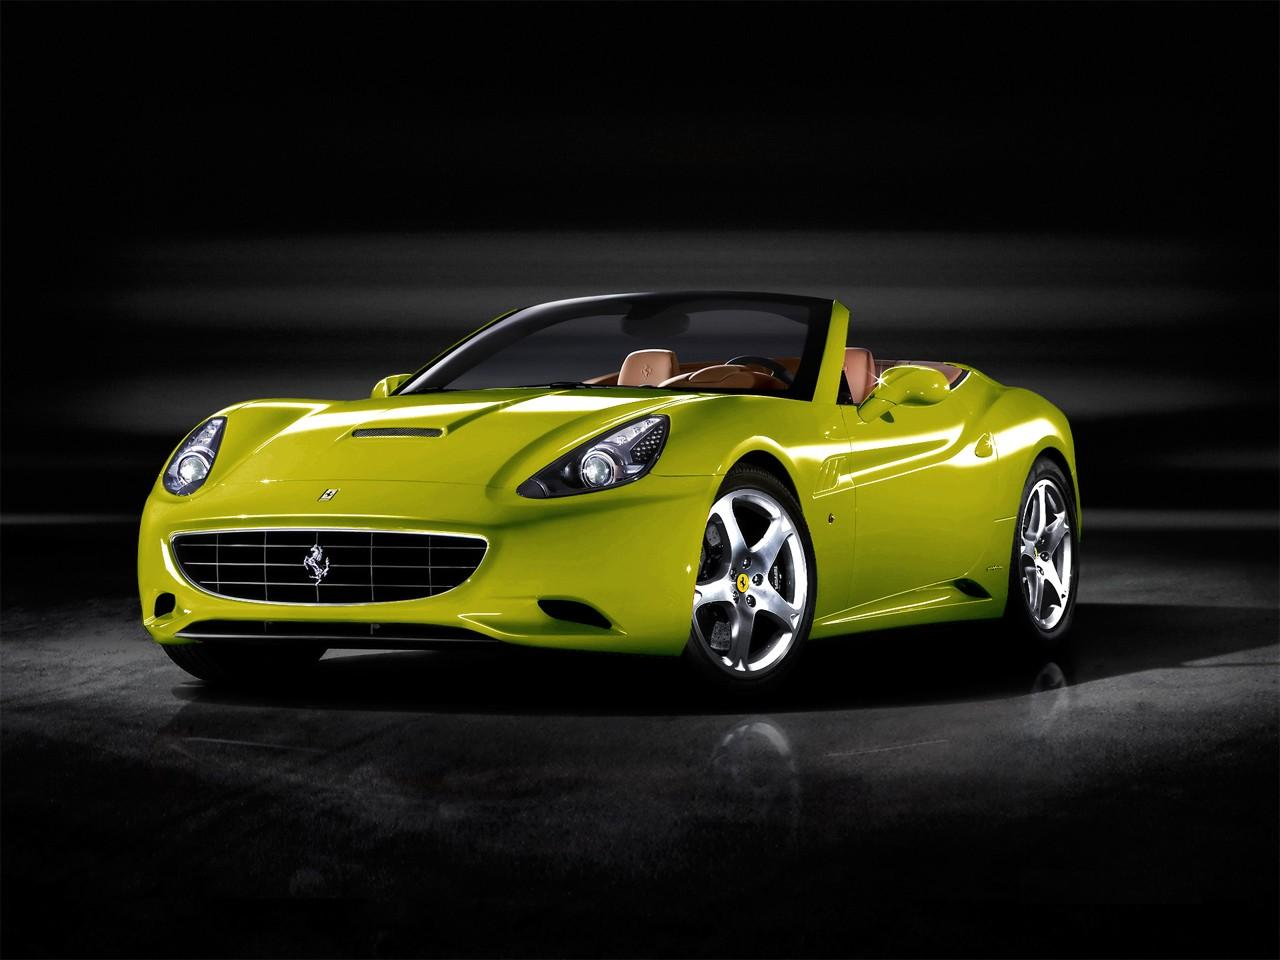 Top 50 Most Dashing And Beautiful FERRARI Car Wallpapers In HD